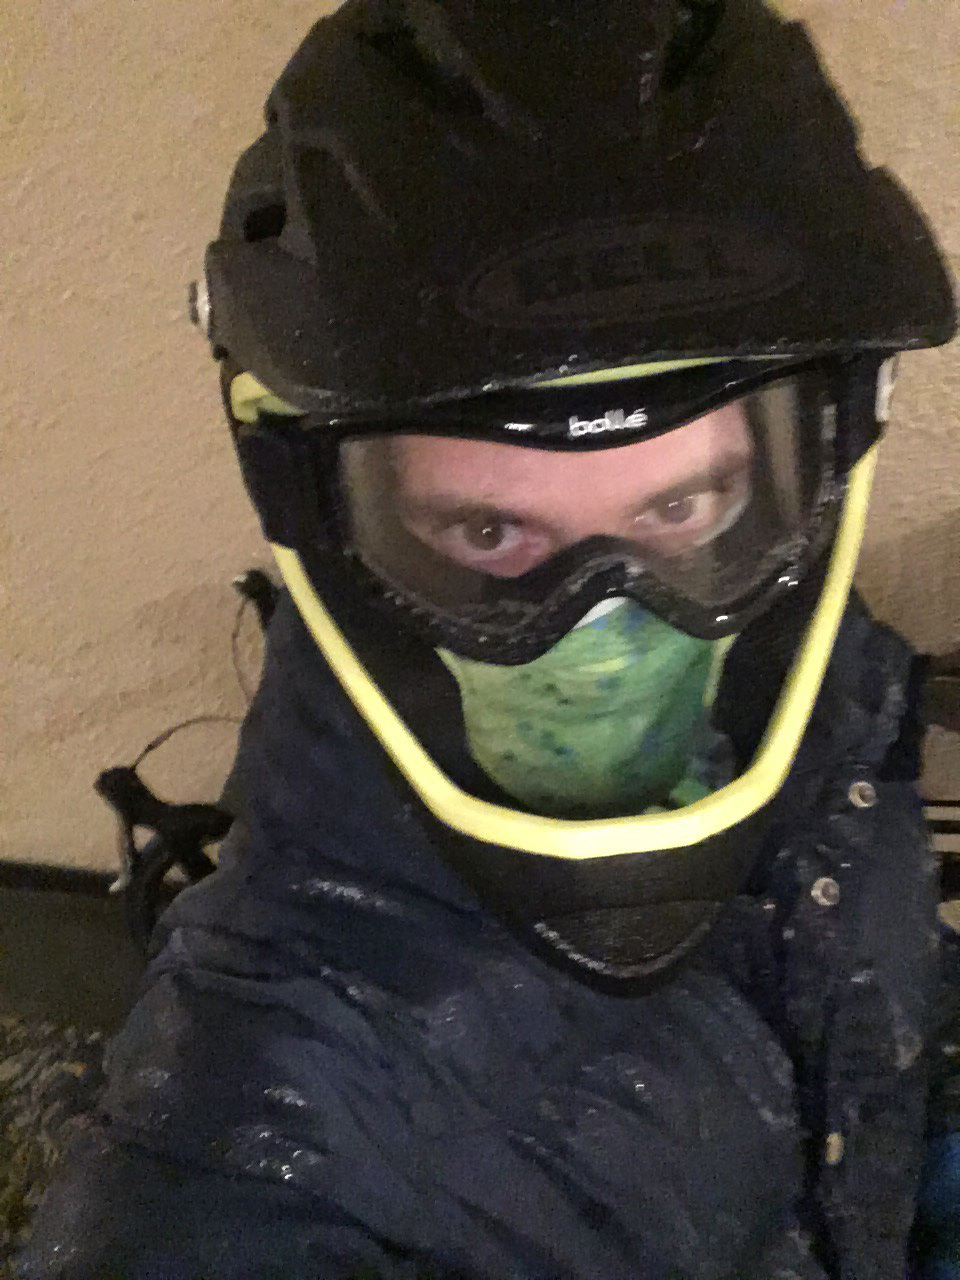 Sweaty person with dirt bike helmet on.